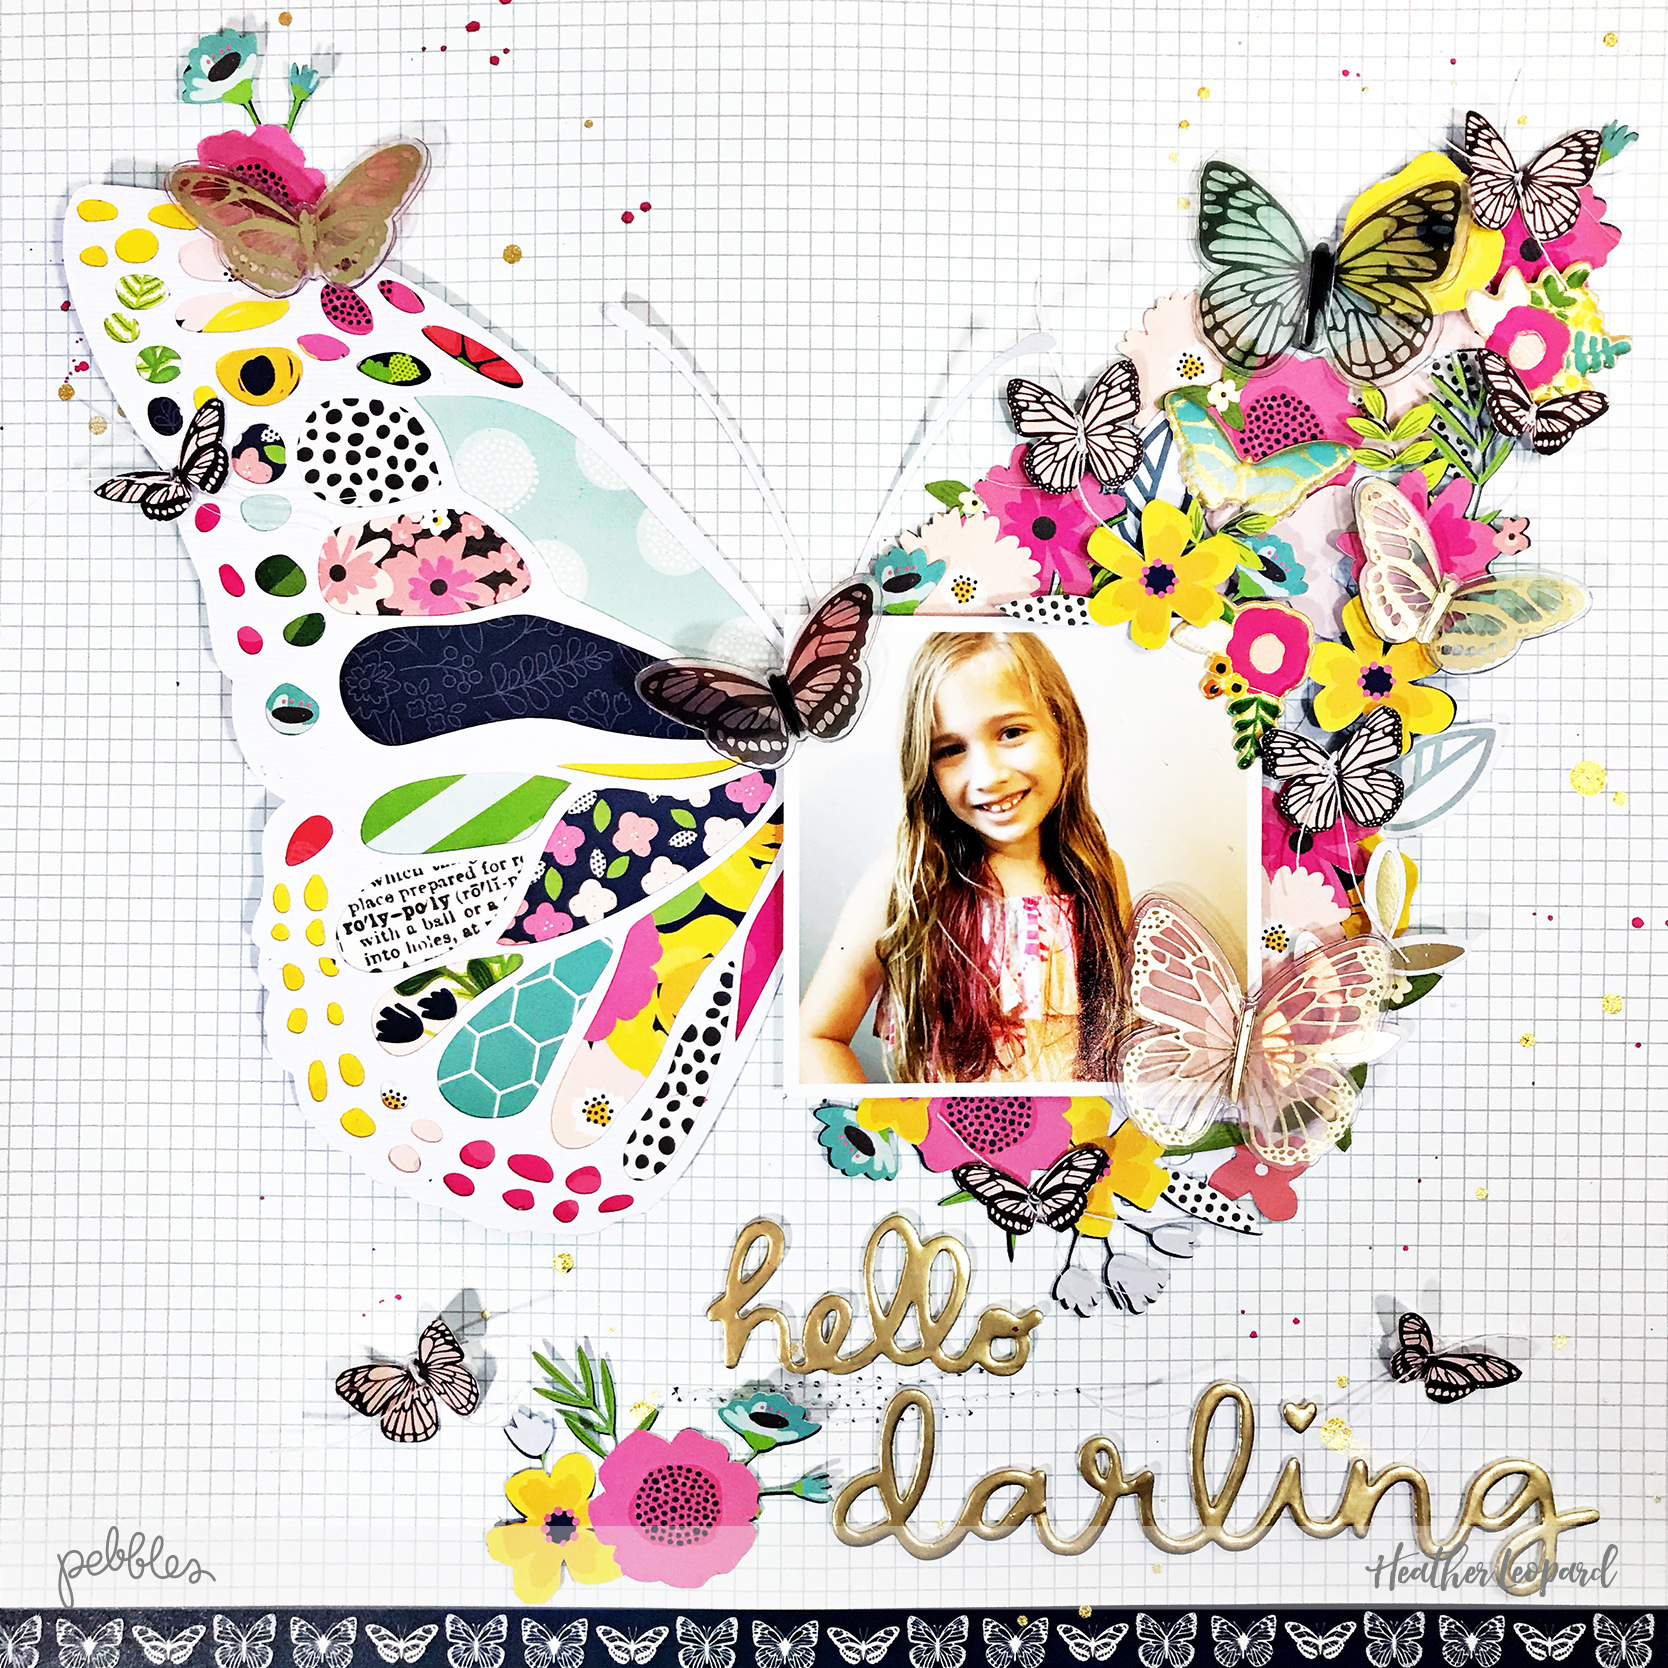 https://pebblesincblog.com/wp-content/uploads/2018/02/Butterfly-scrapbooking-layout-by-Heather-Leopard-4.jpg